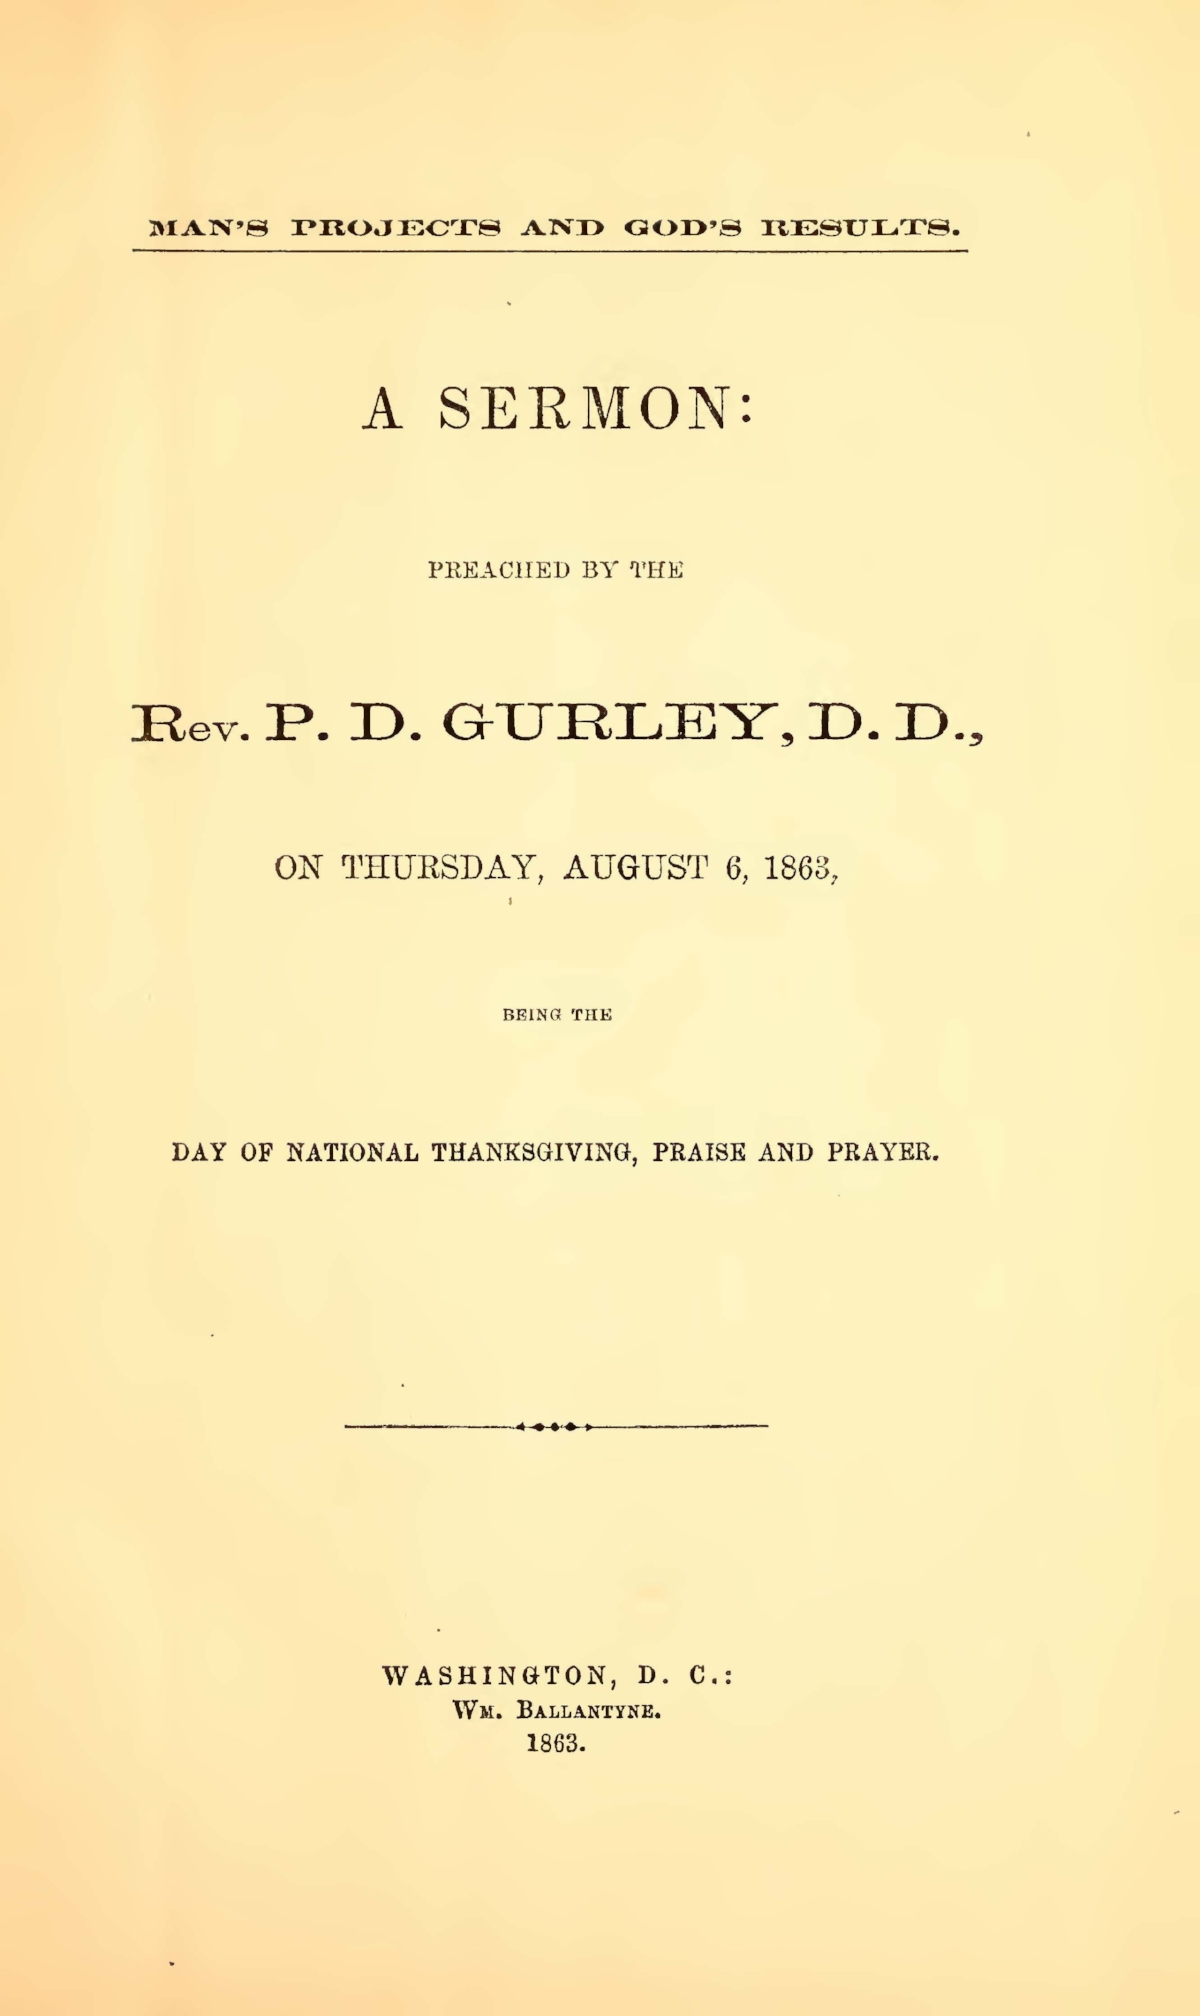 Gurley, Phineas Densmore, Man's Projects and God's Results Title Page.jpg